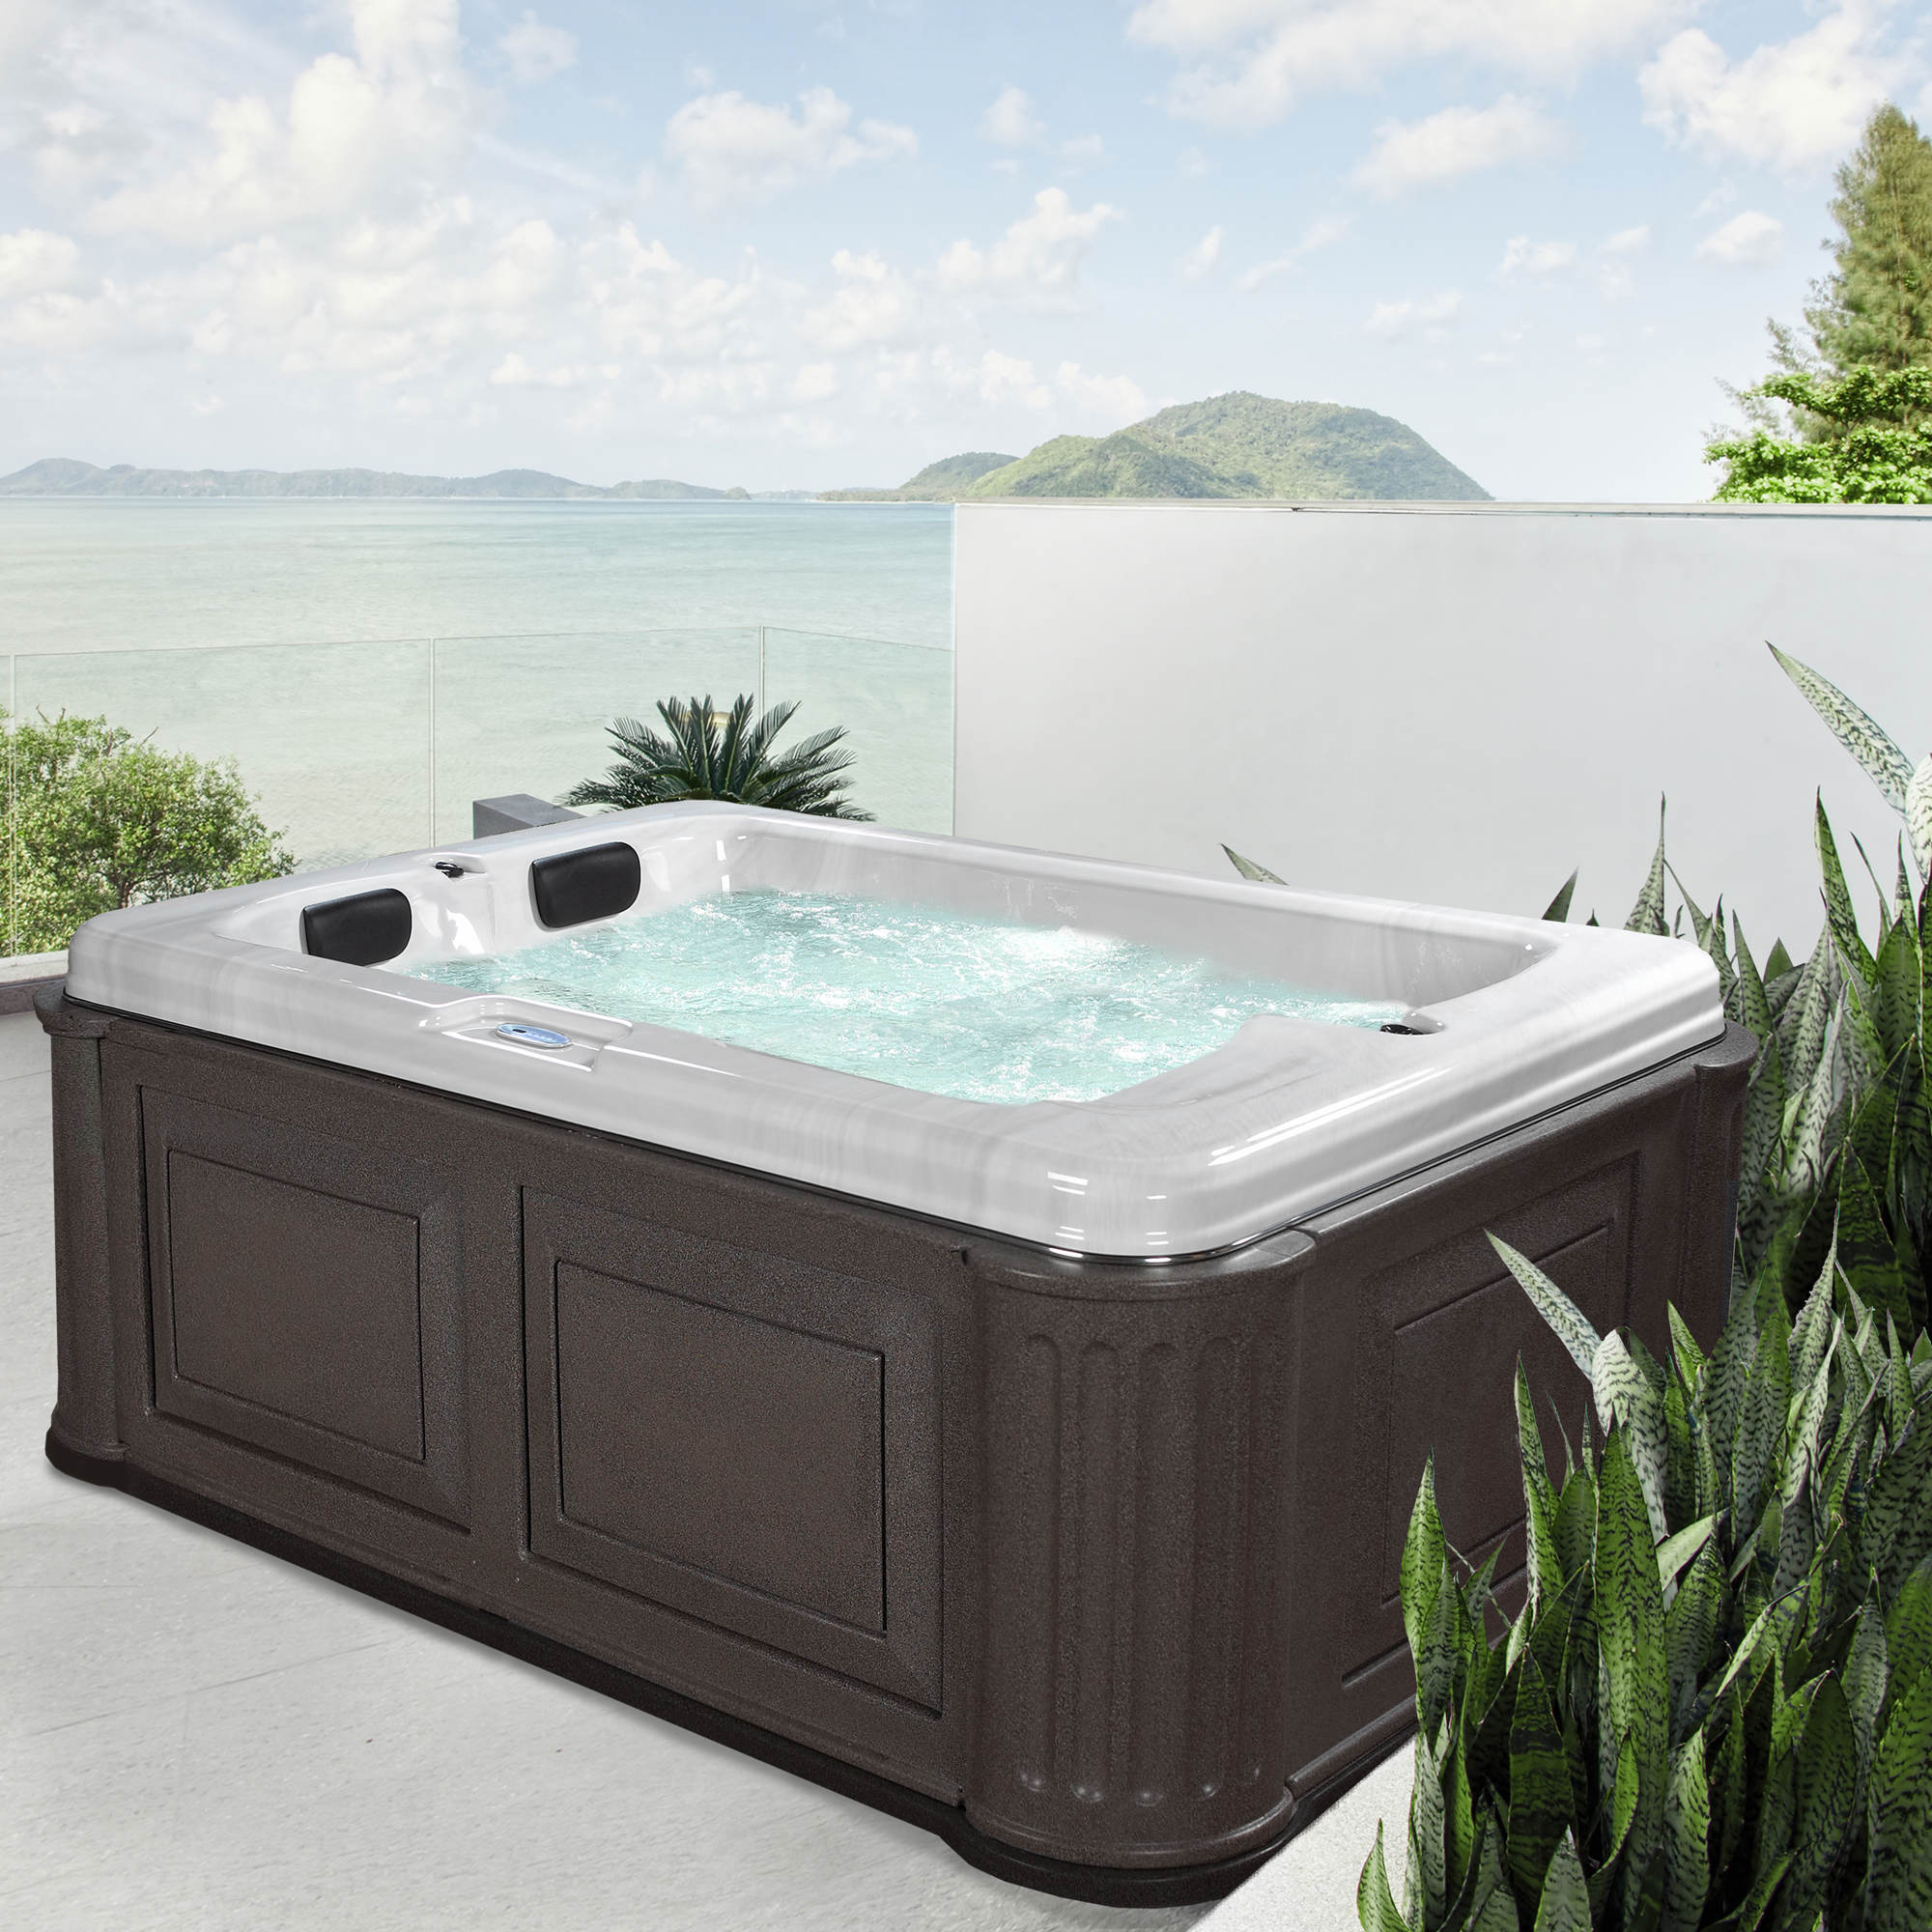 valentine american with spas spa play waterfall jacuzzi wayfair and jet handrail tub person outdoor pdx plug